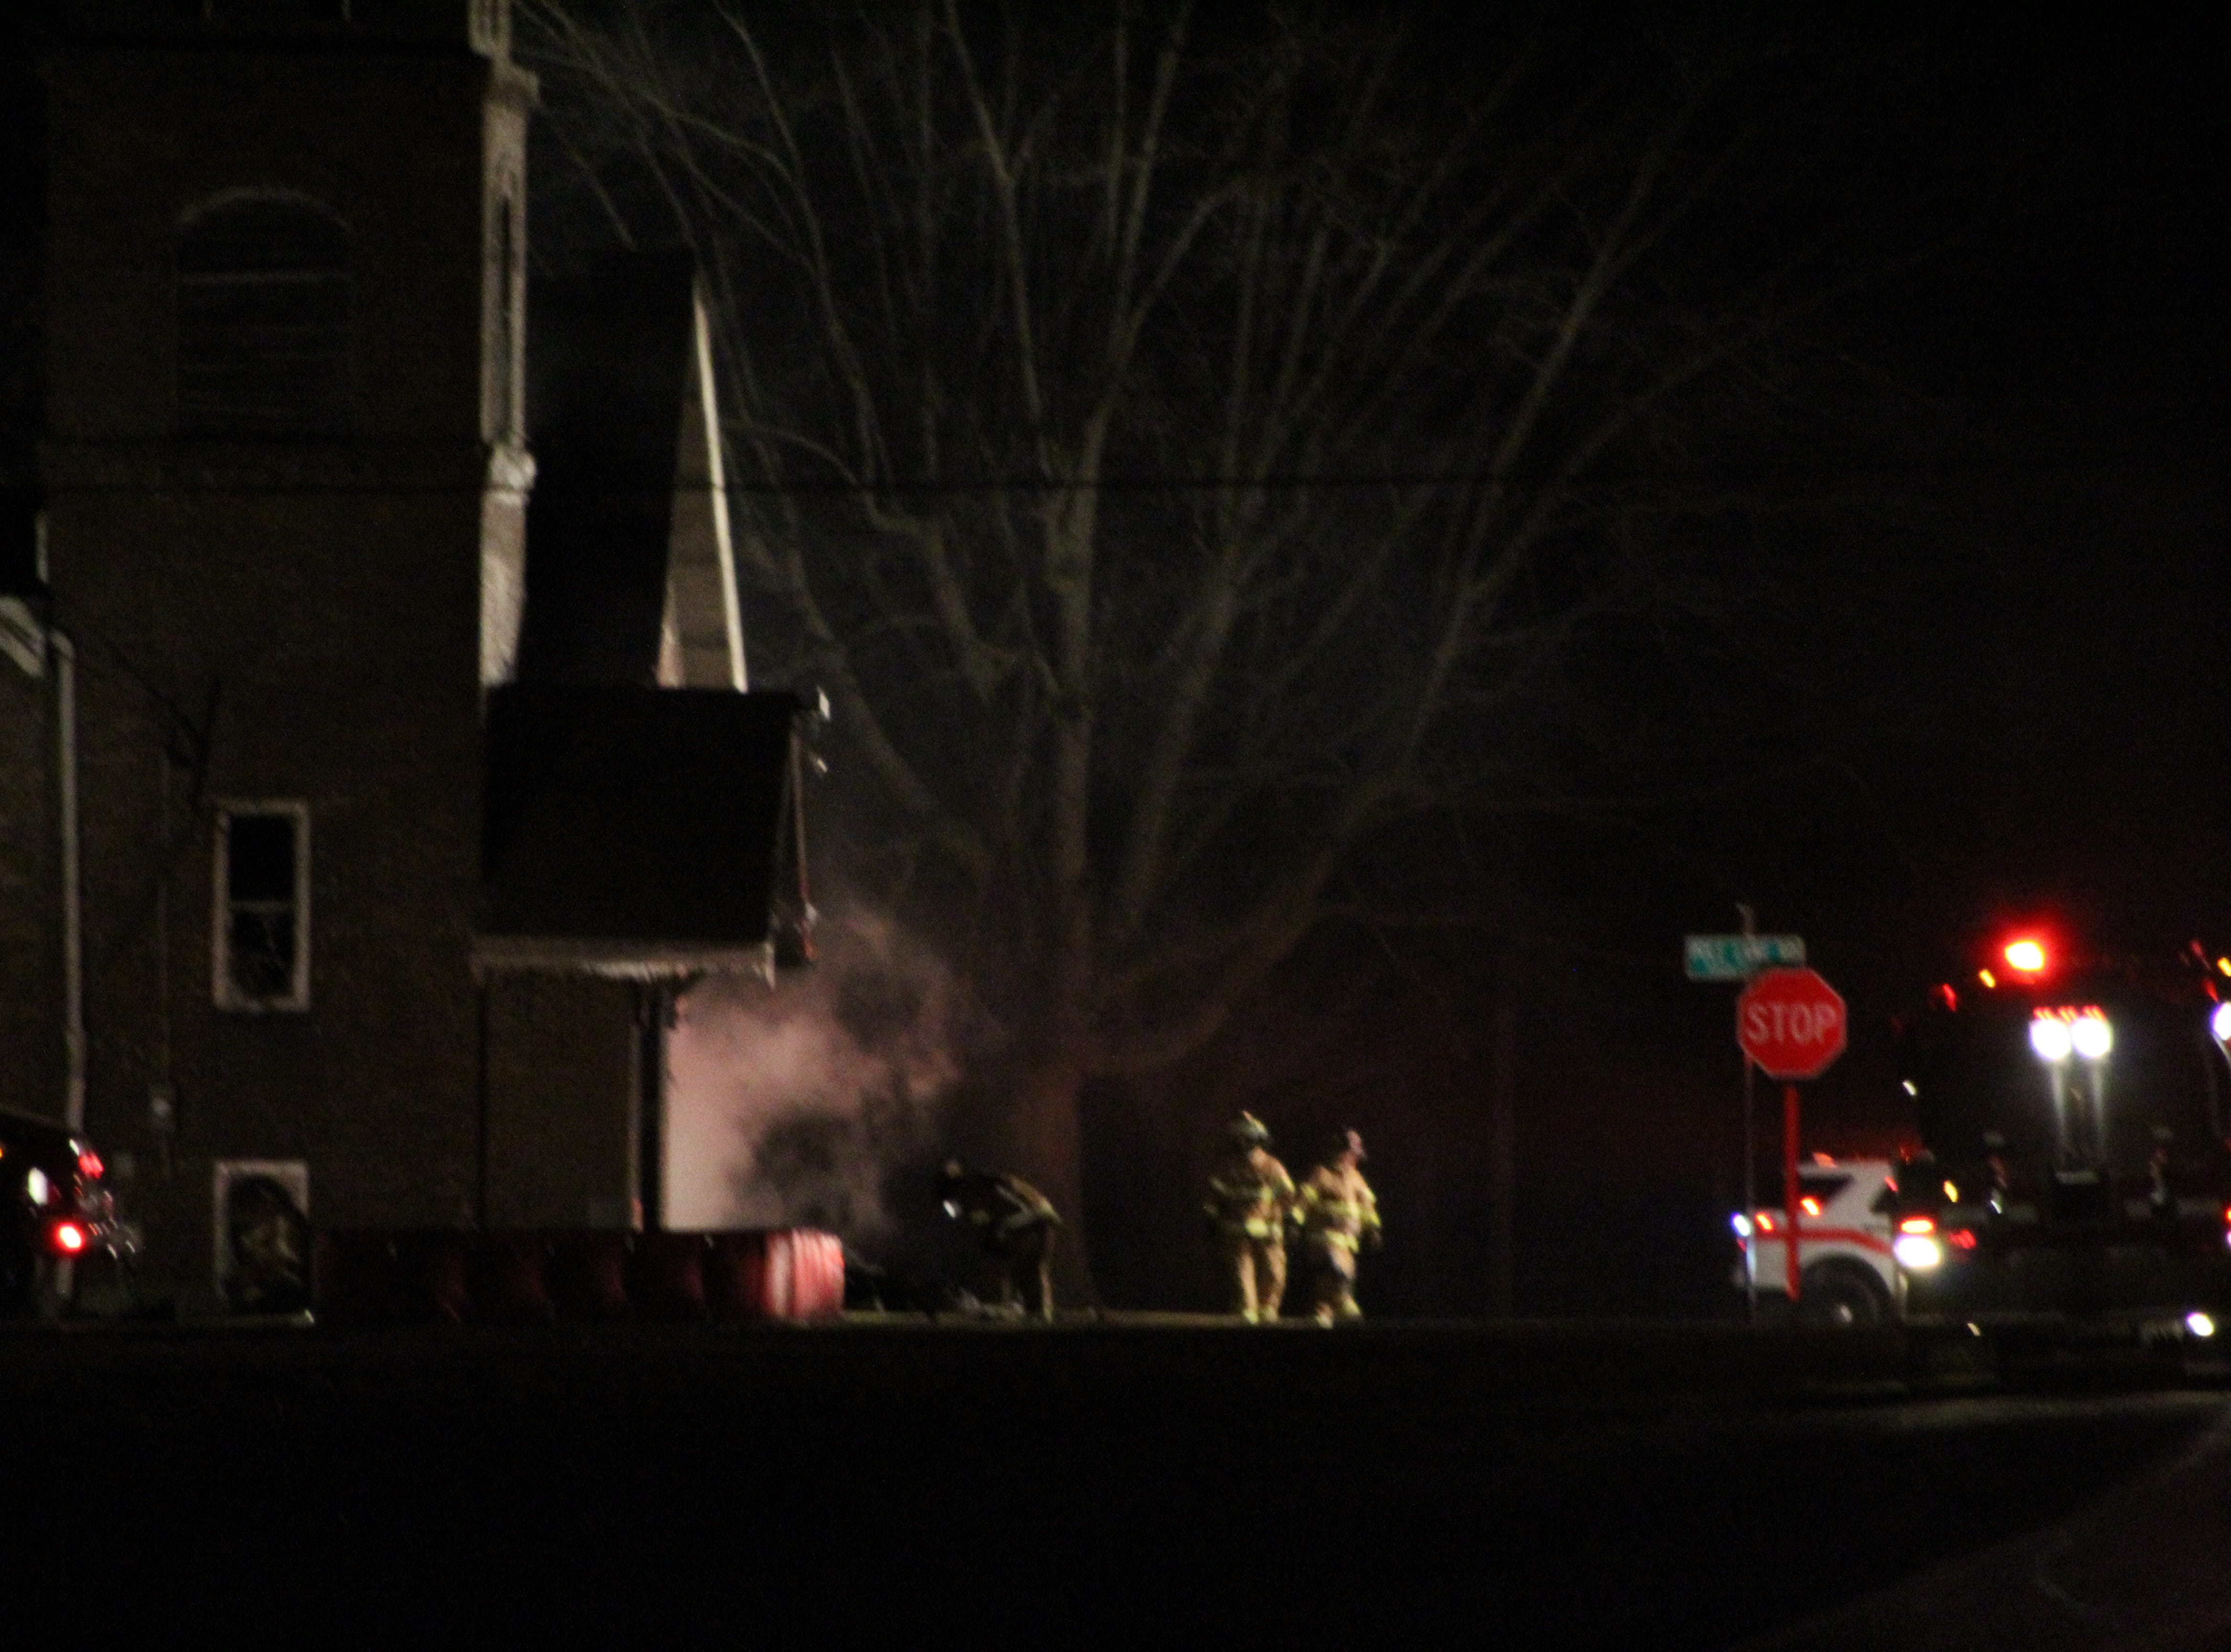 Firefighters from five fire departments responded to reports that flames were coming out of an empty church at 2110 Likens Road.